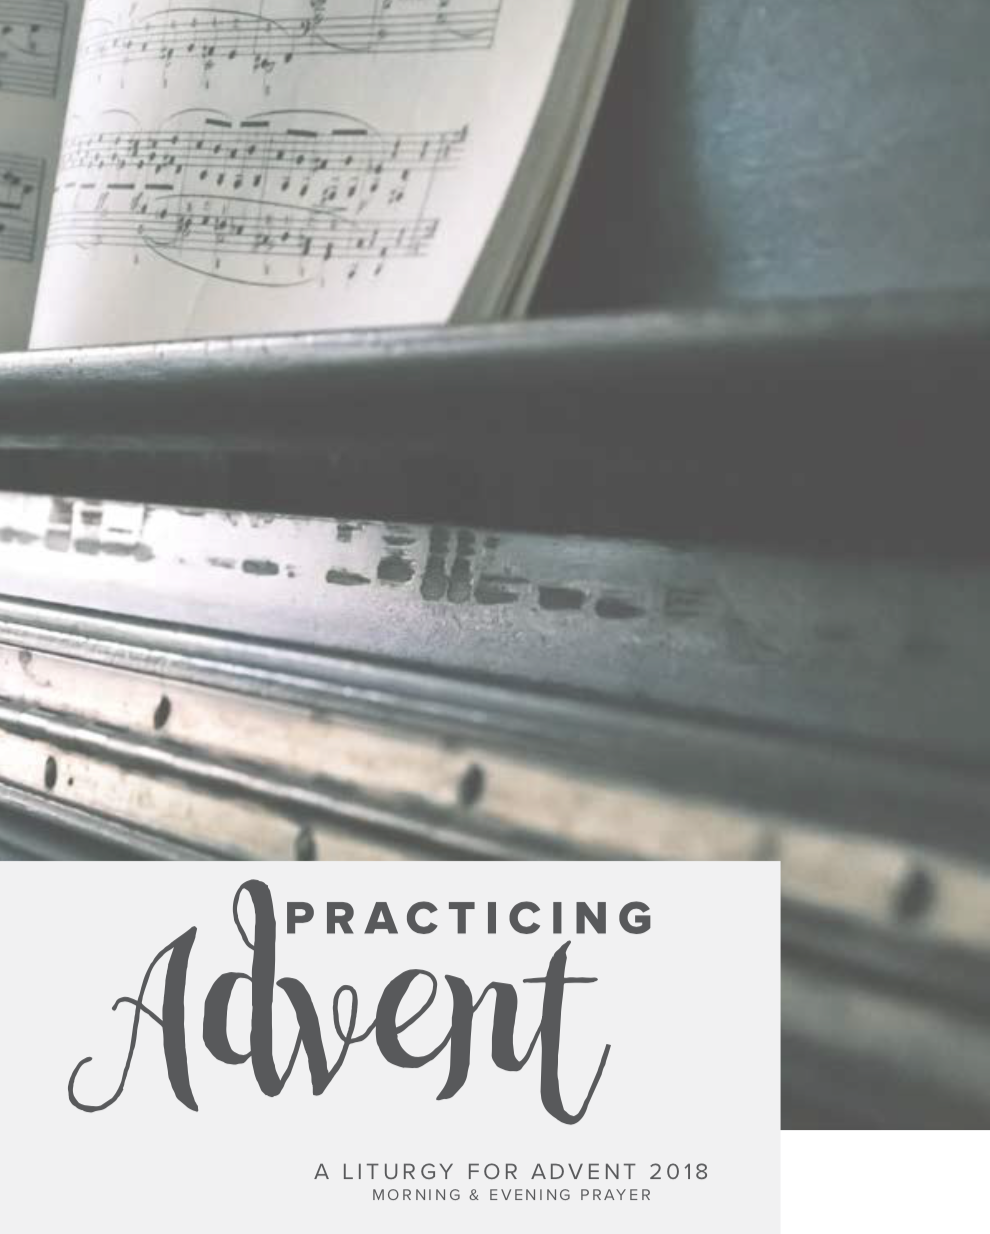 Practicing Advent - A Liturgy for Advent